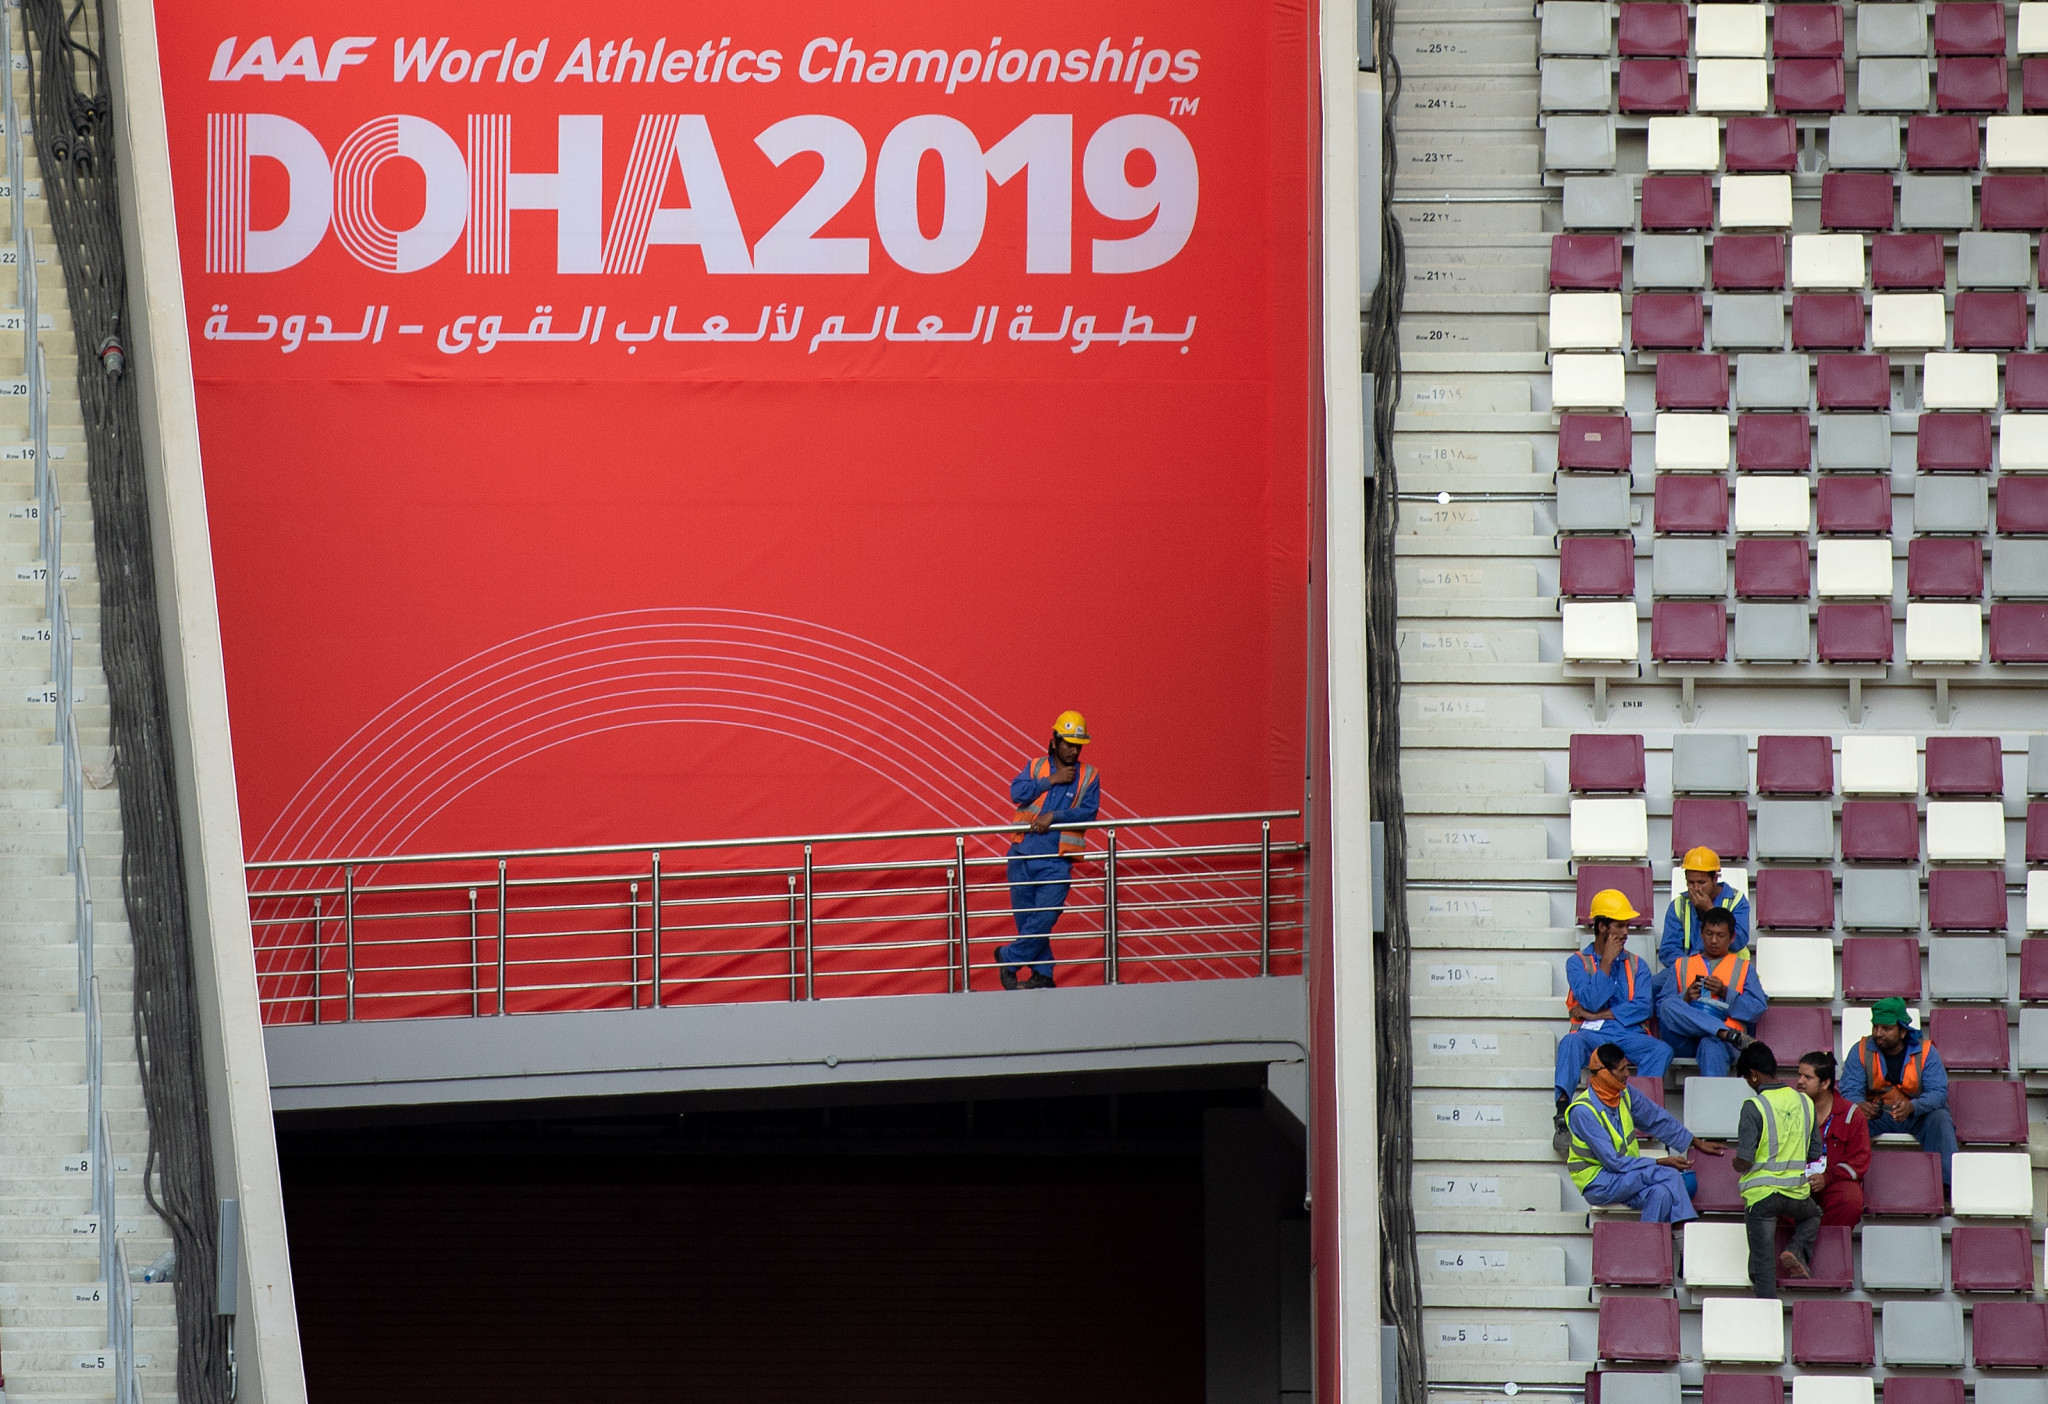 Migrant construction workers have been employed in helping get the Khalfia International Stadium ready for the IAAF World Championships which open in Doha today ©Getty Images